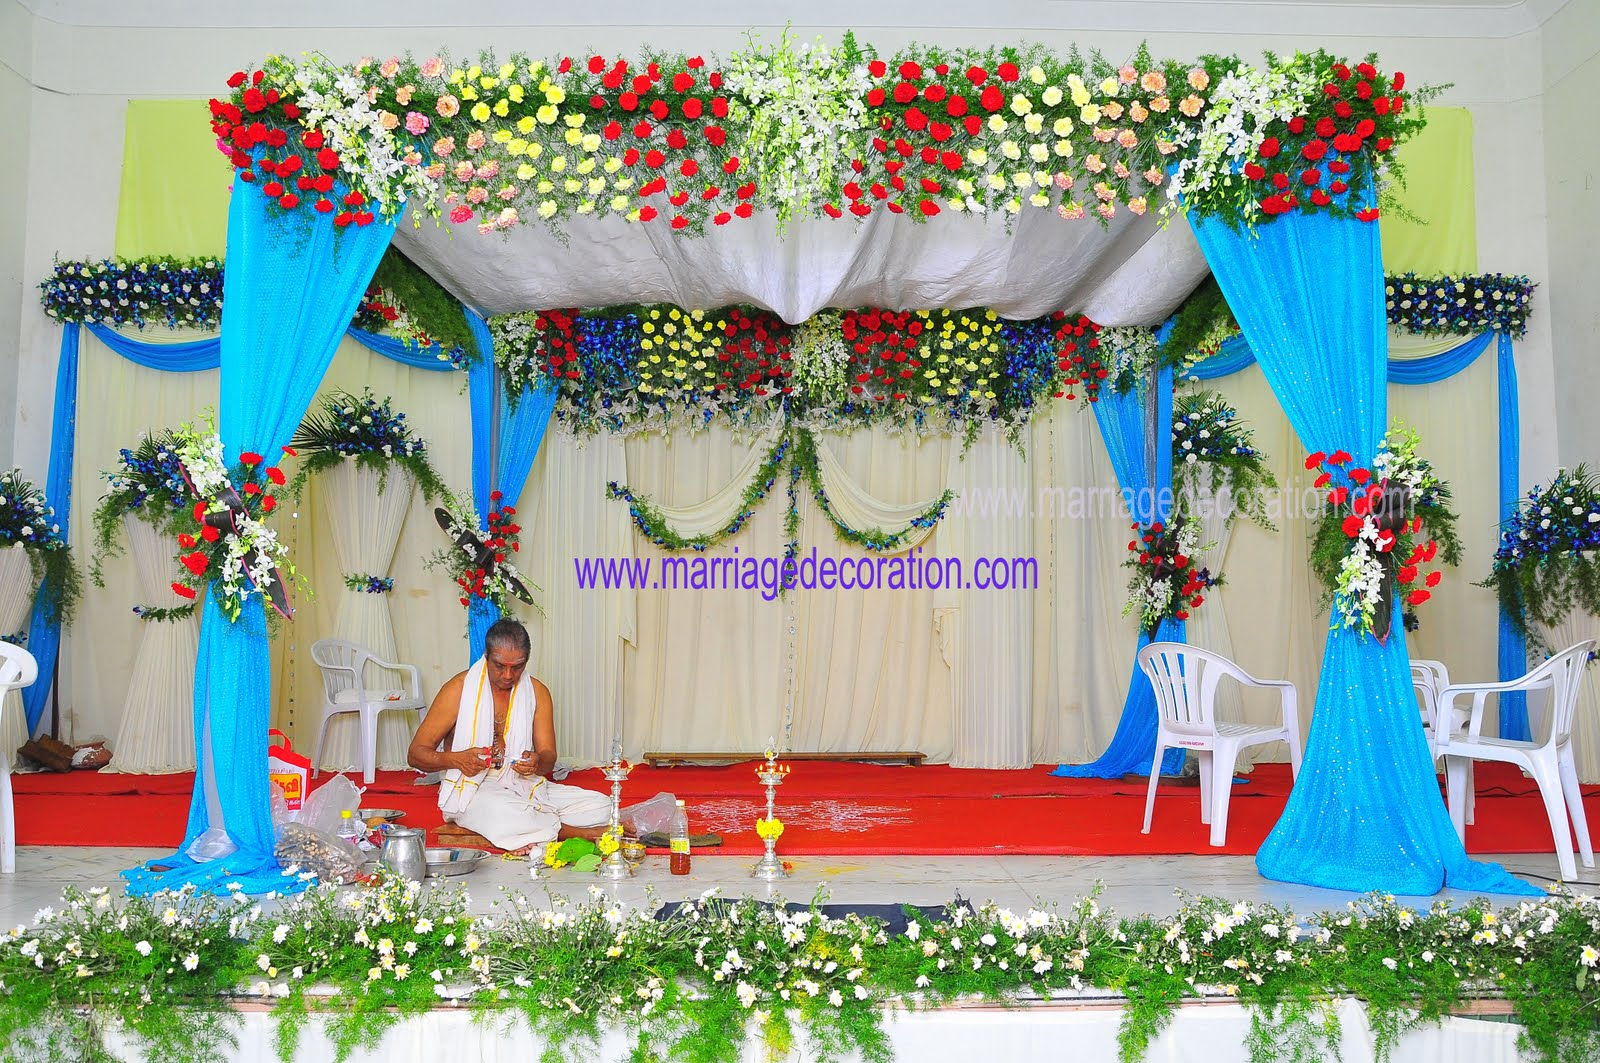 Mys blog exclusive indian wedding decor wedding decoration stage m113 junglespirit Image collections